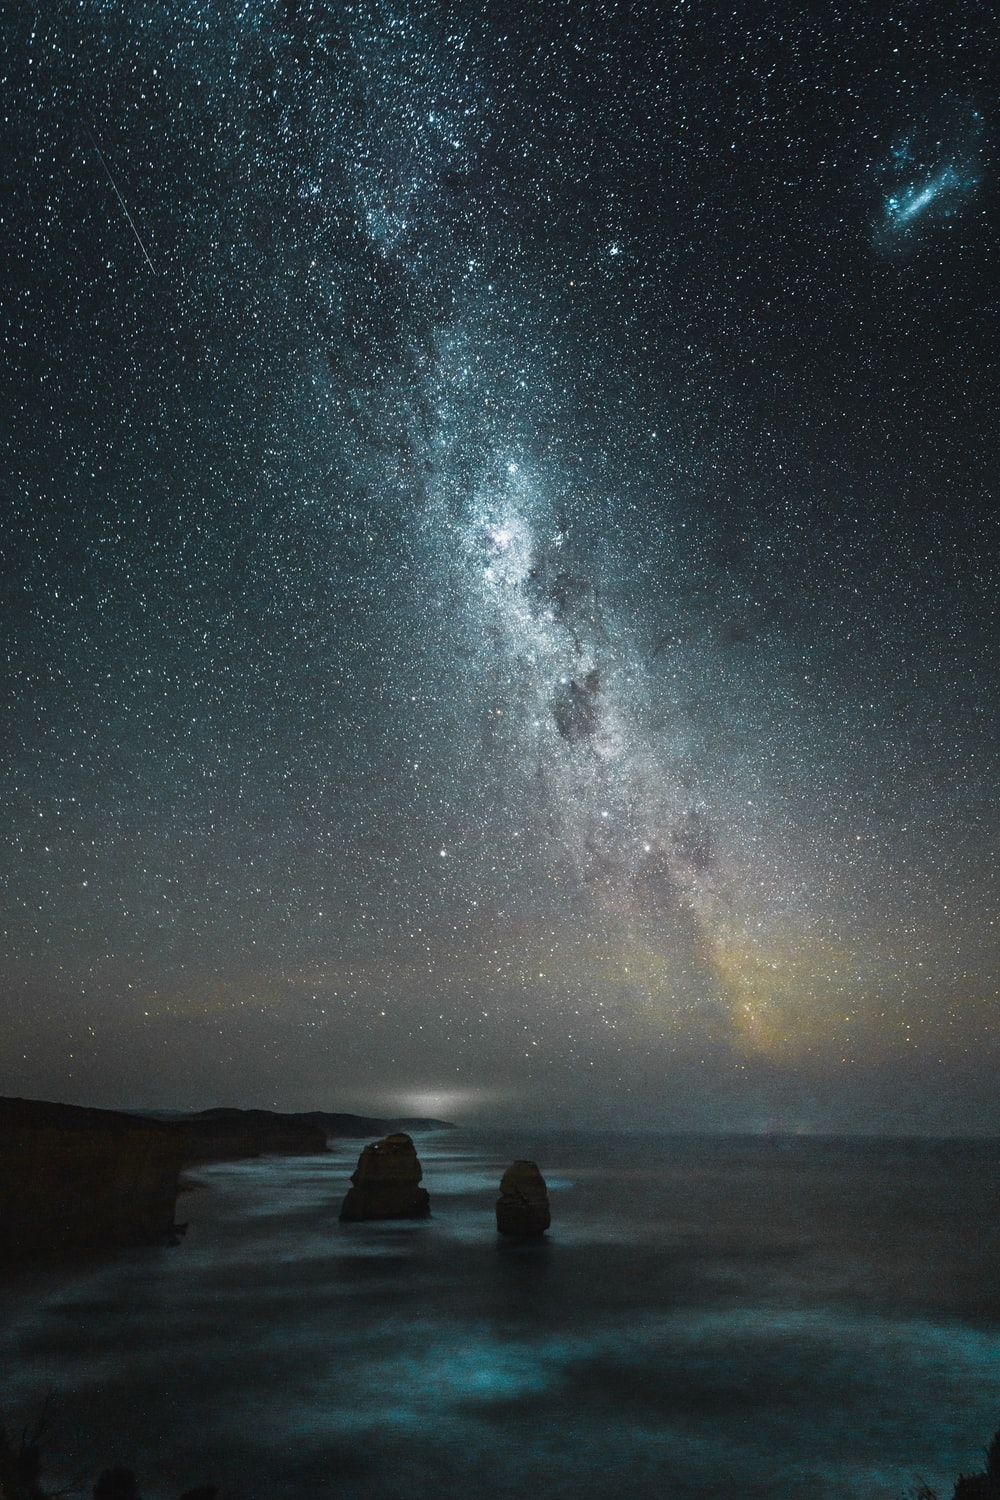 rock formation near shore during starry night